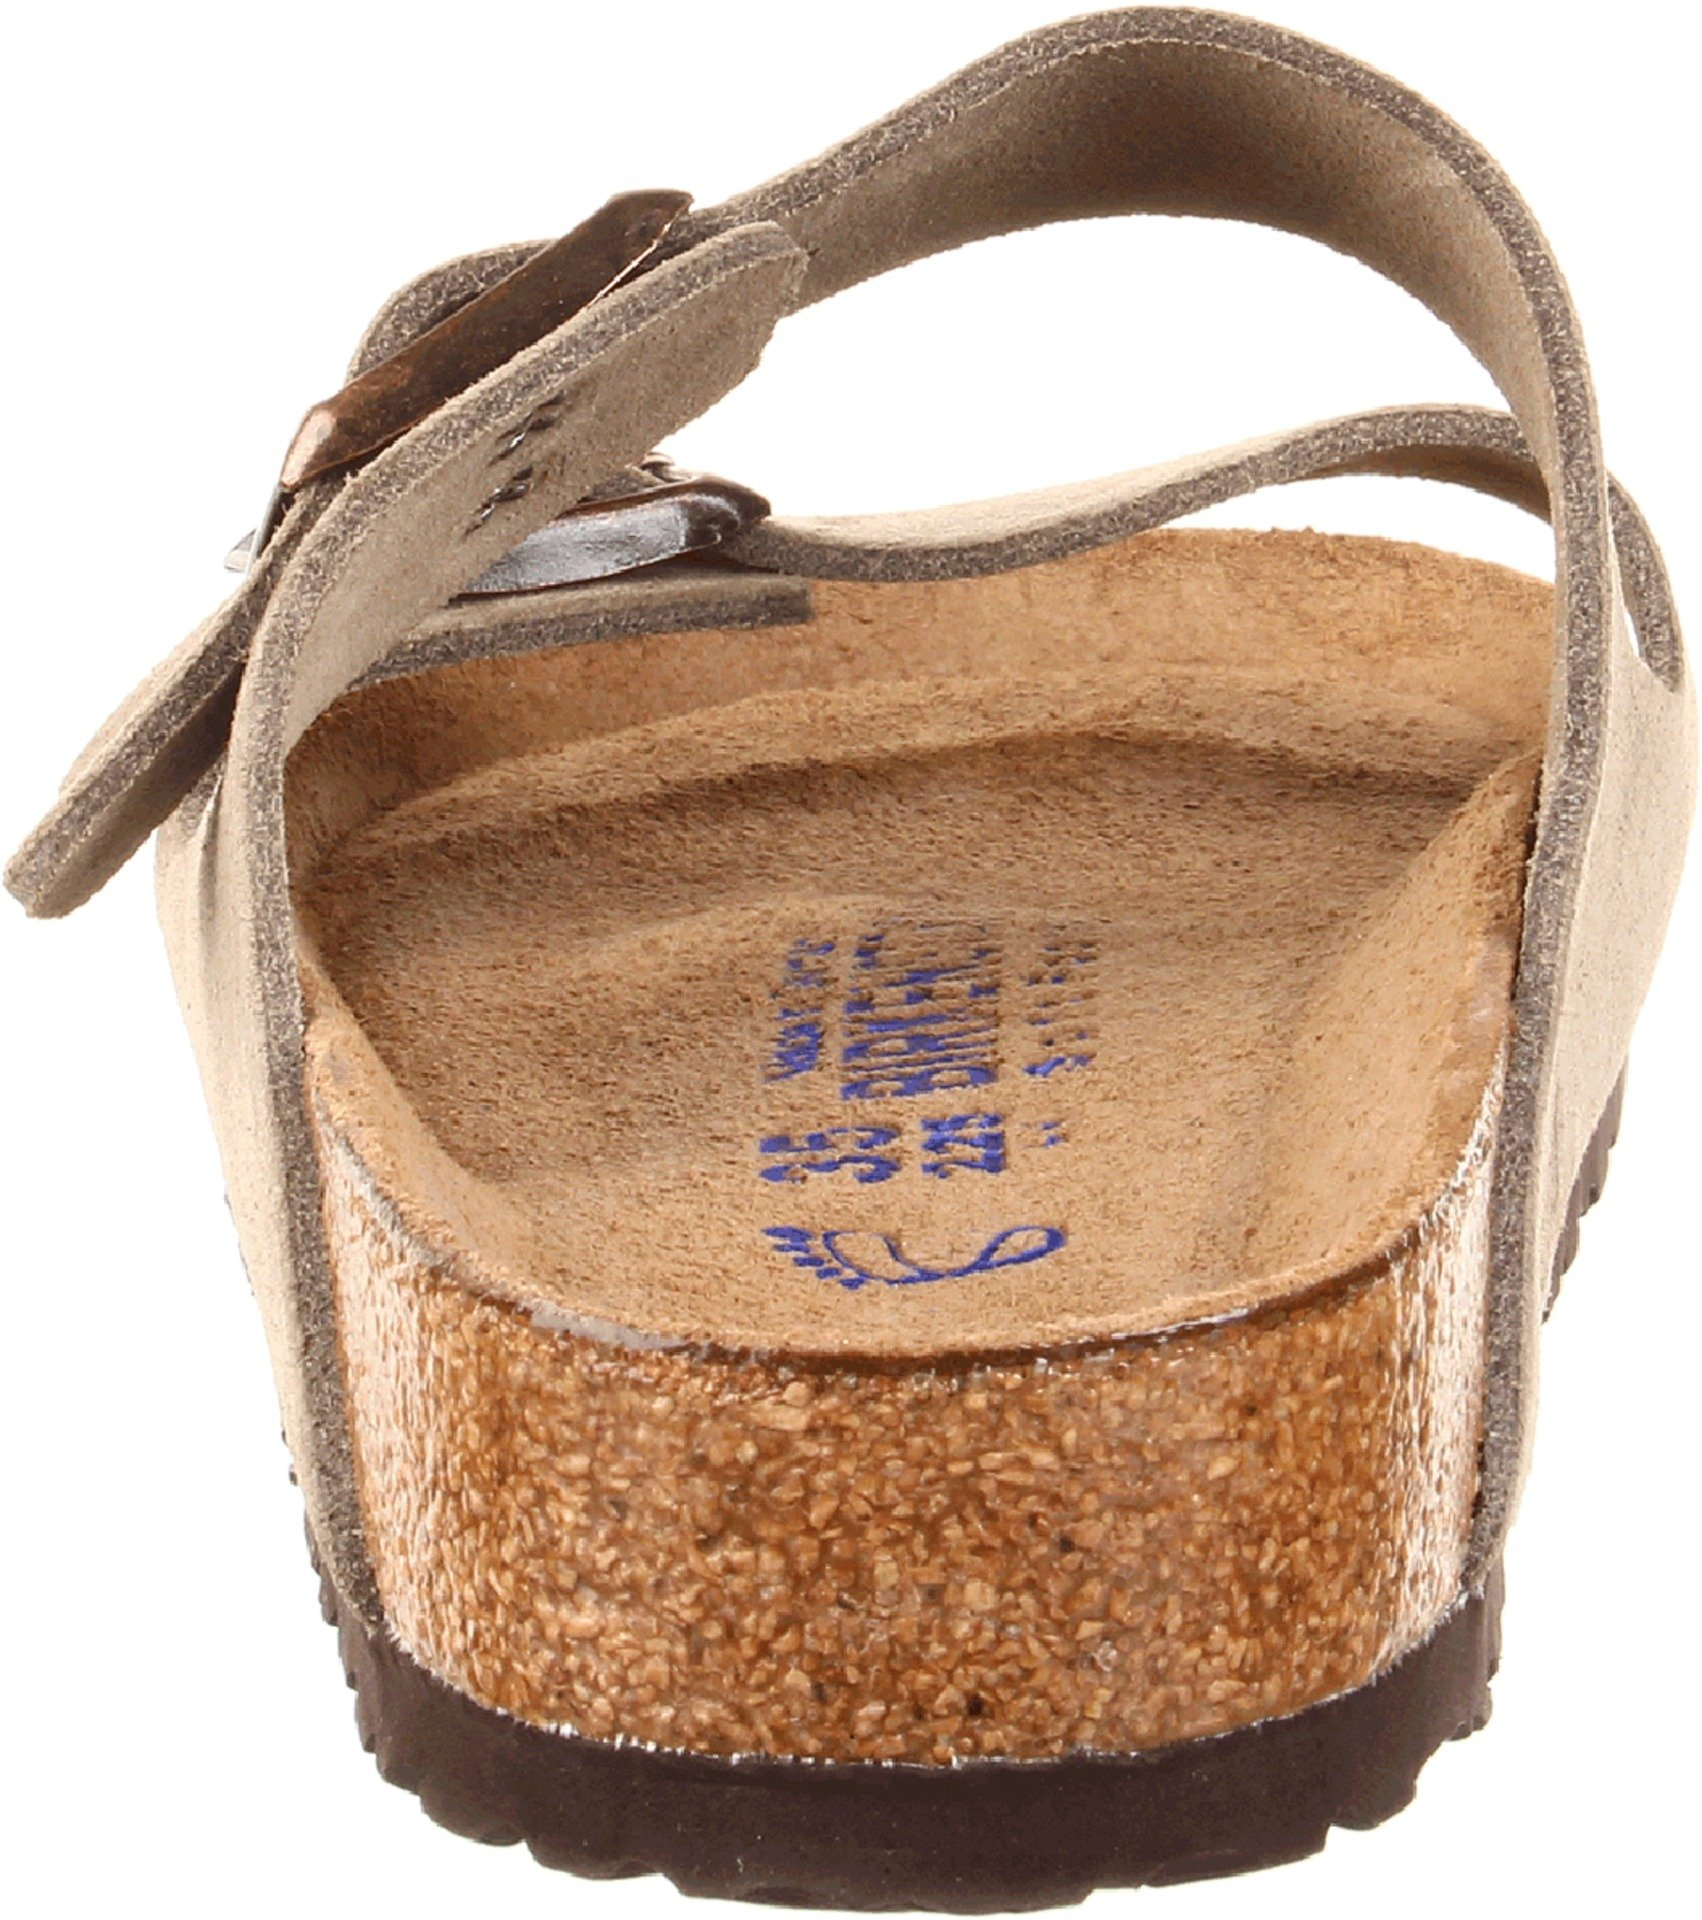 Birkenstock Unisex Arizona Taupe Suede Soft Foot Bed Sandals - 38 M EU / 7-7.5 B(M) US by Birkenstock (Image #2)